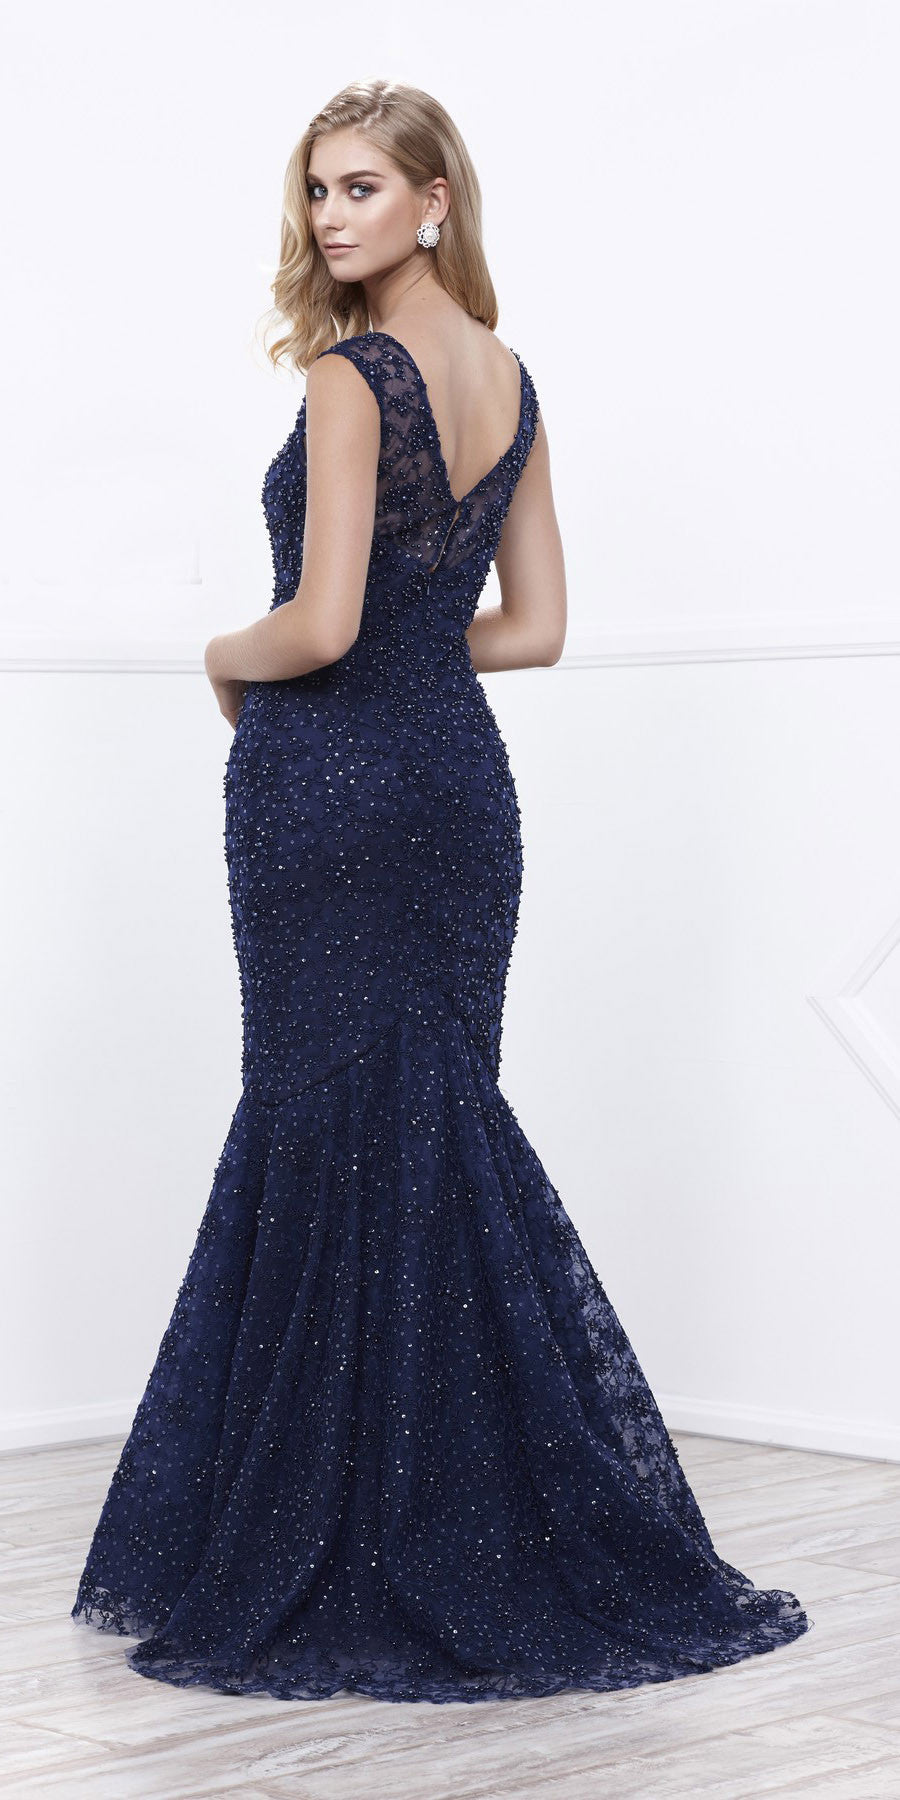 Illusion Lace Sequins Mermaid Floor Length Prom Dress Navy Blue